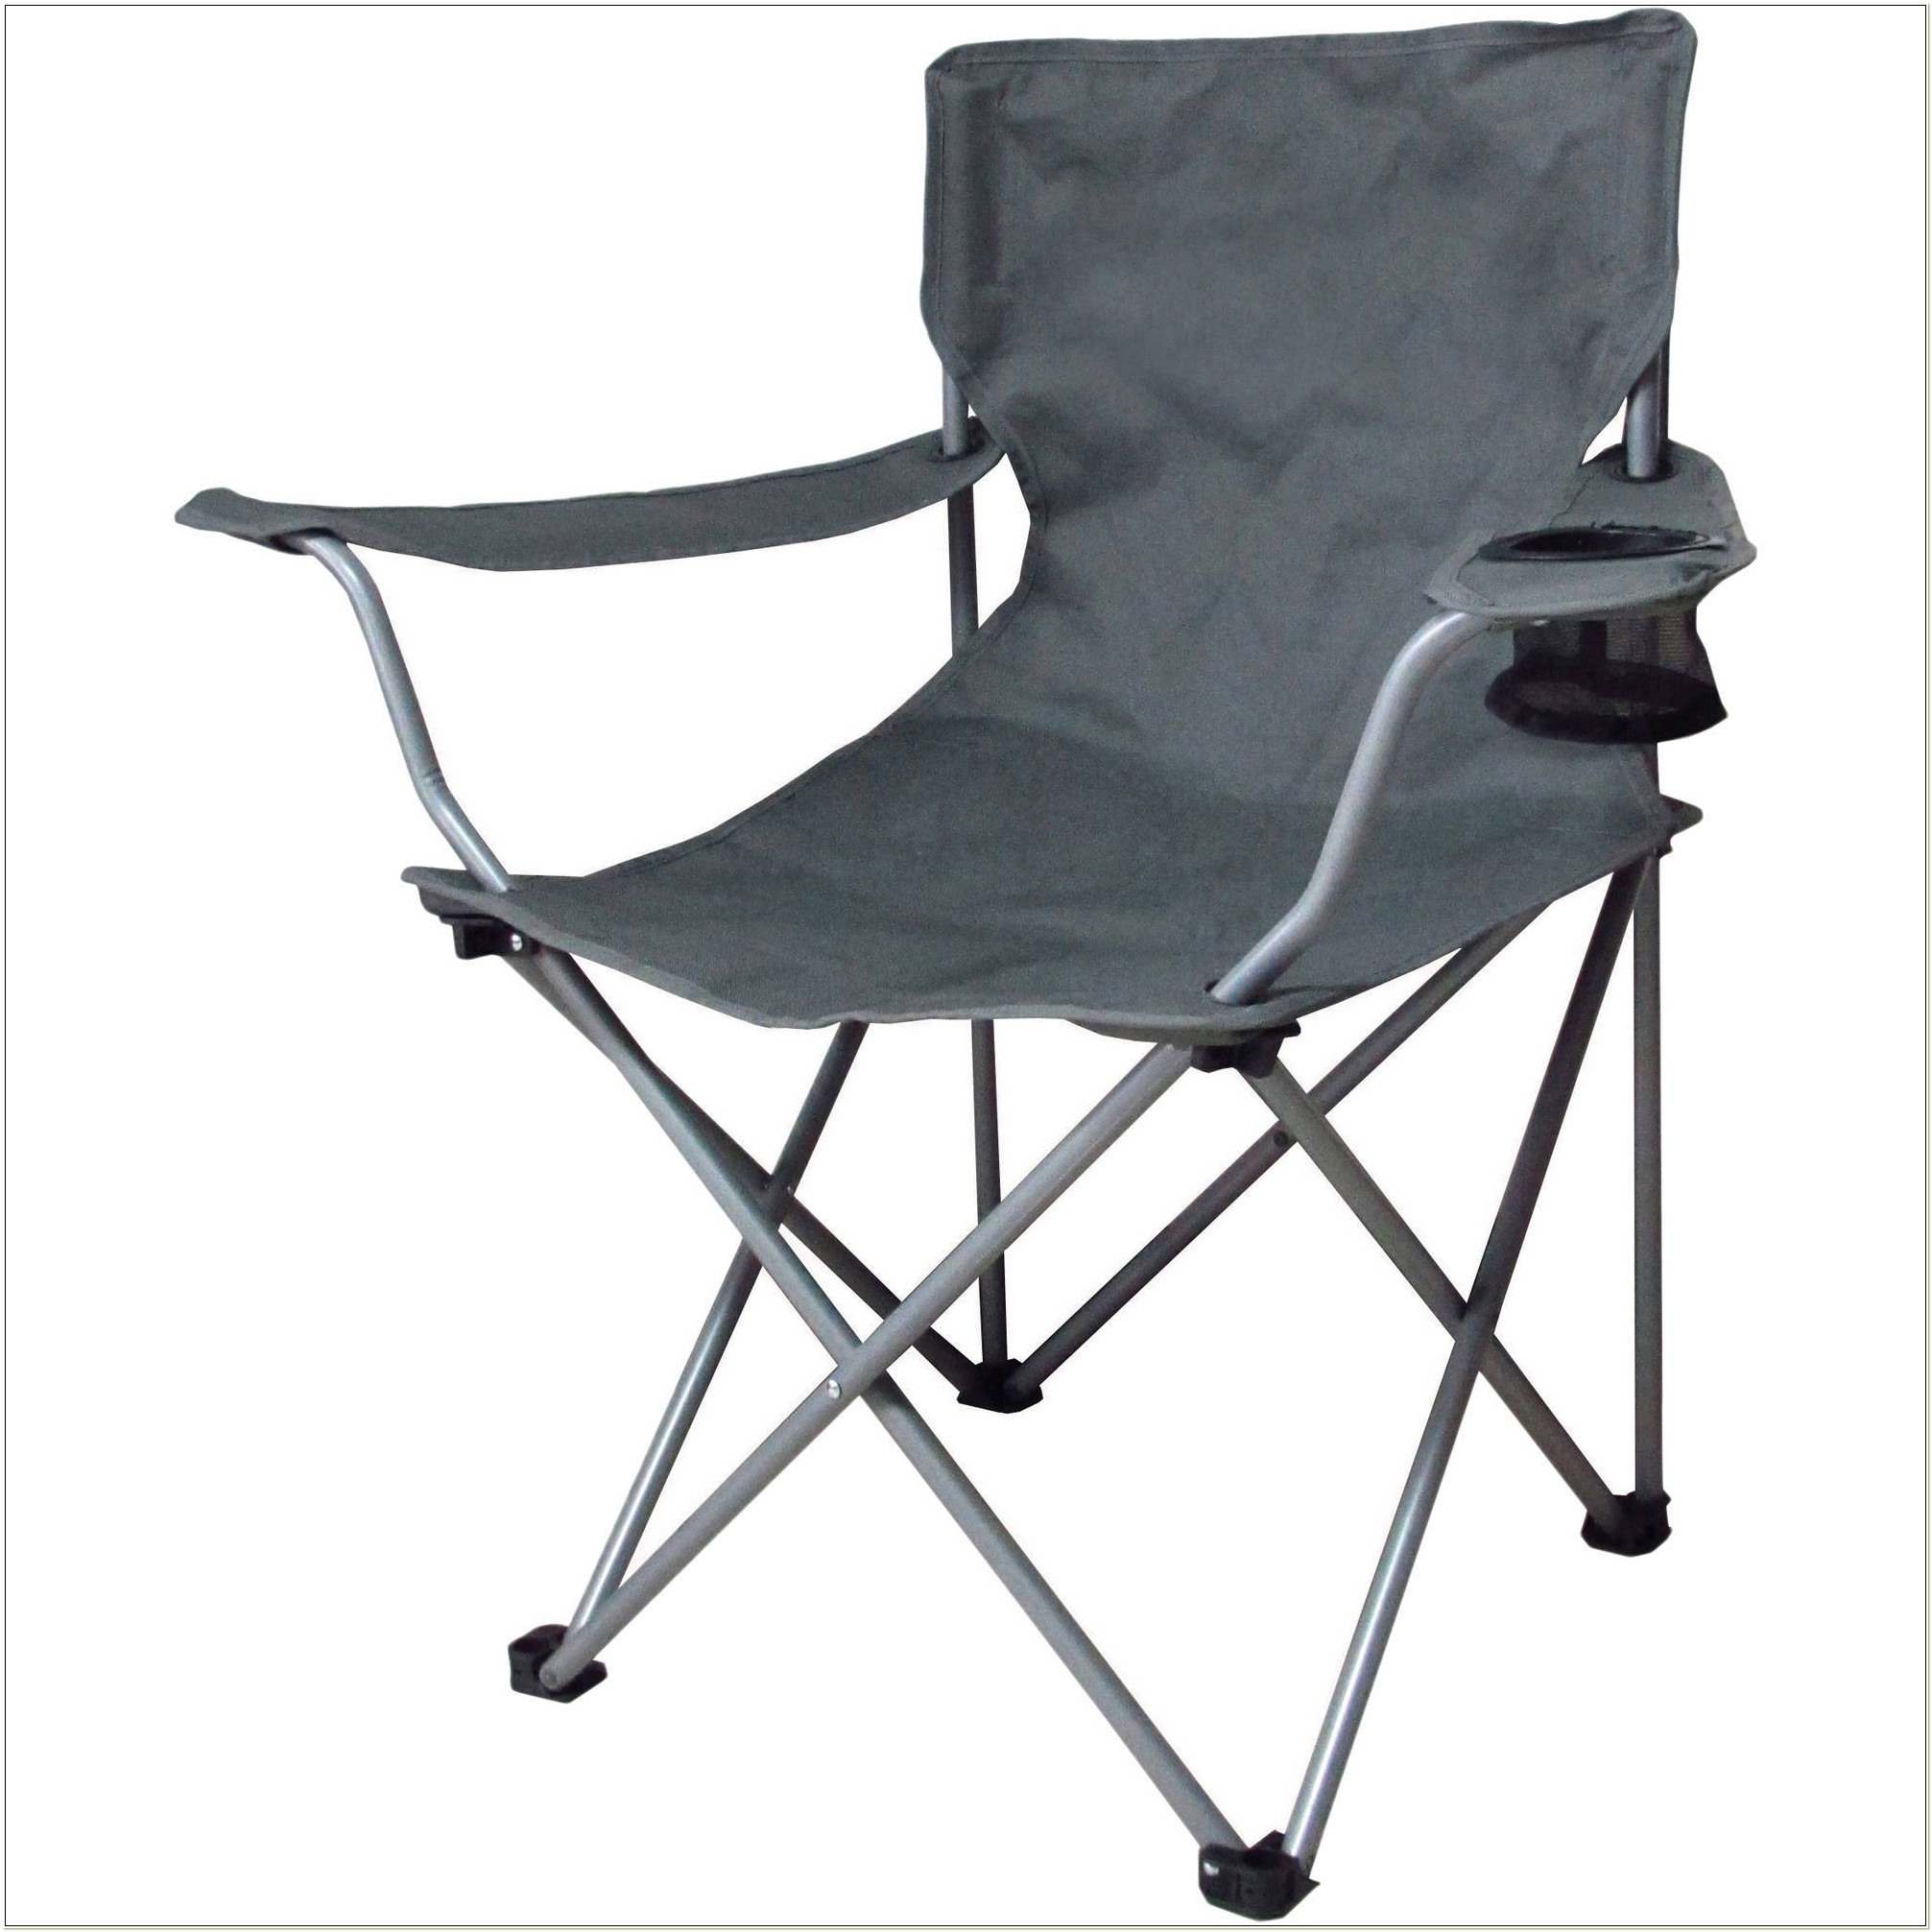 Folding Camp Chairs At Walmart